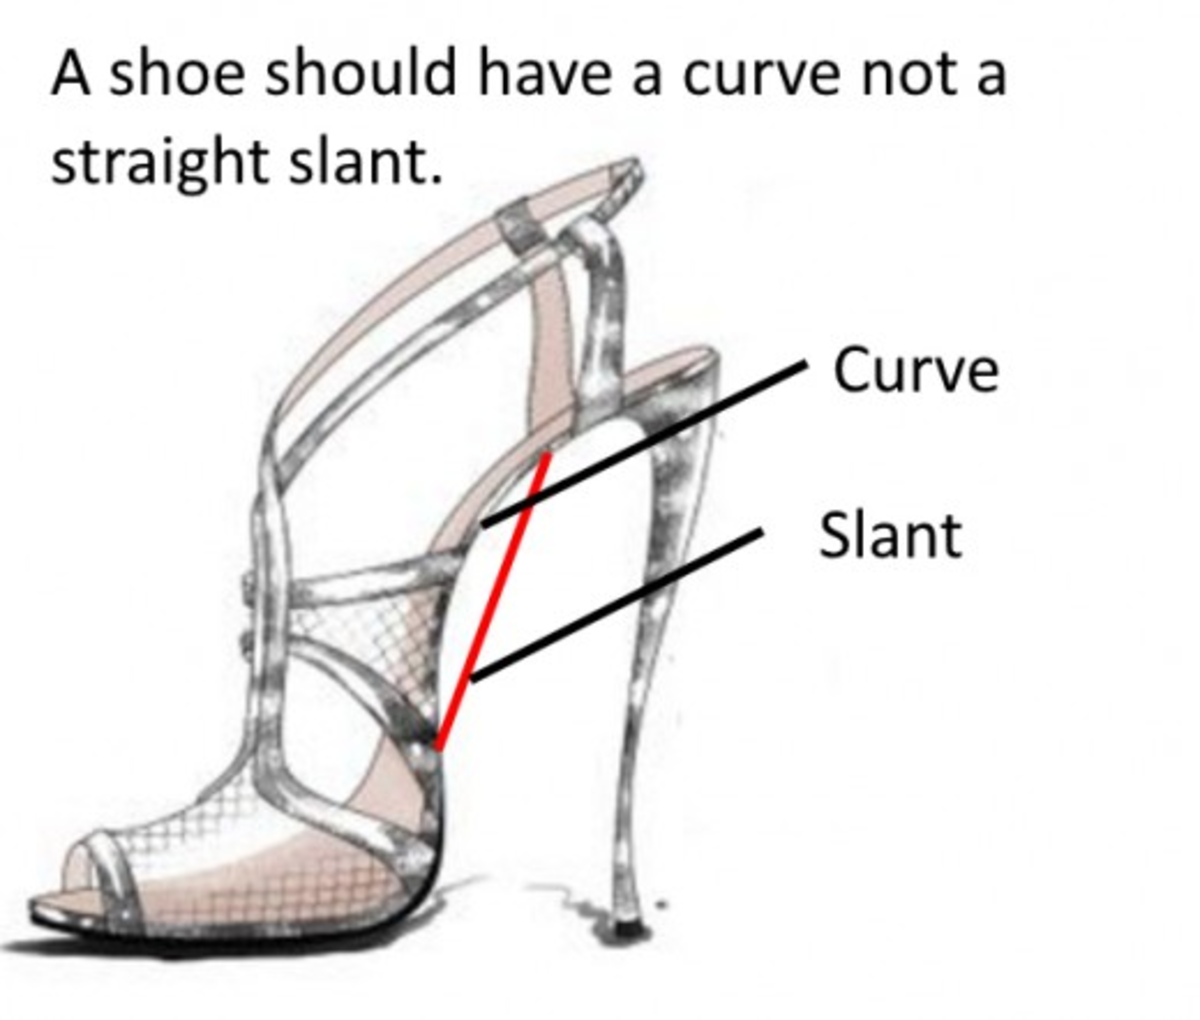 Some people have high arches. If they wear a shoe without support, it tends to be uncomfortable. By the same token, some people have flat feet or very little of an arch. The shoe should be shaped to the foot.